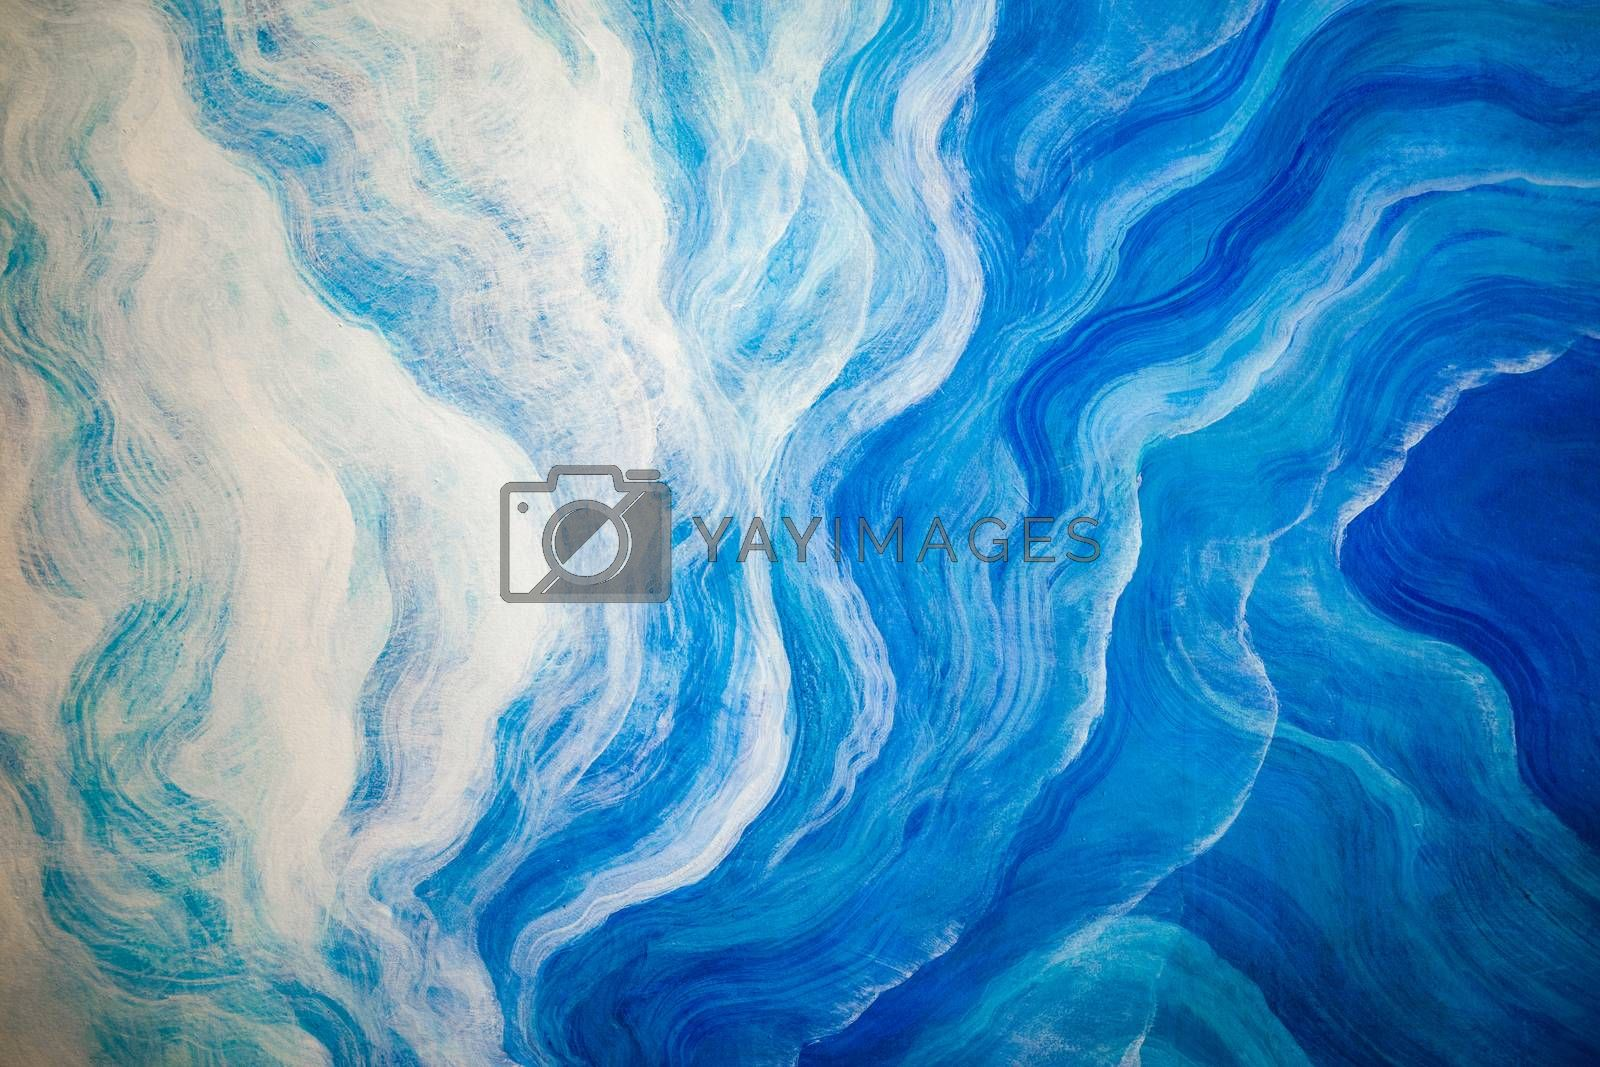 Abstract background of white and blue wave painted on wall.